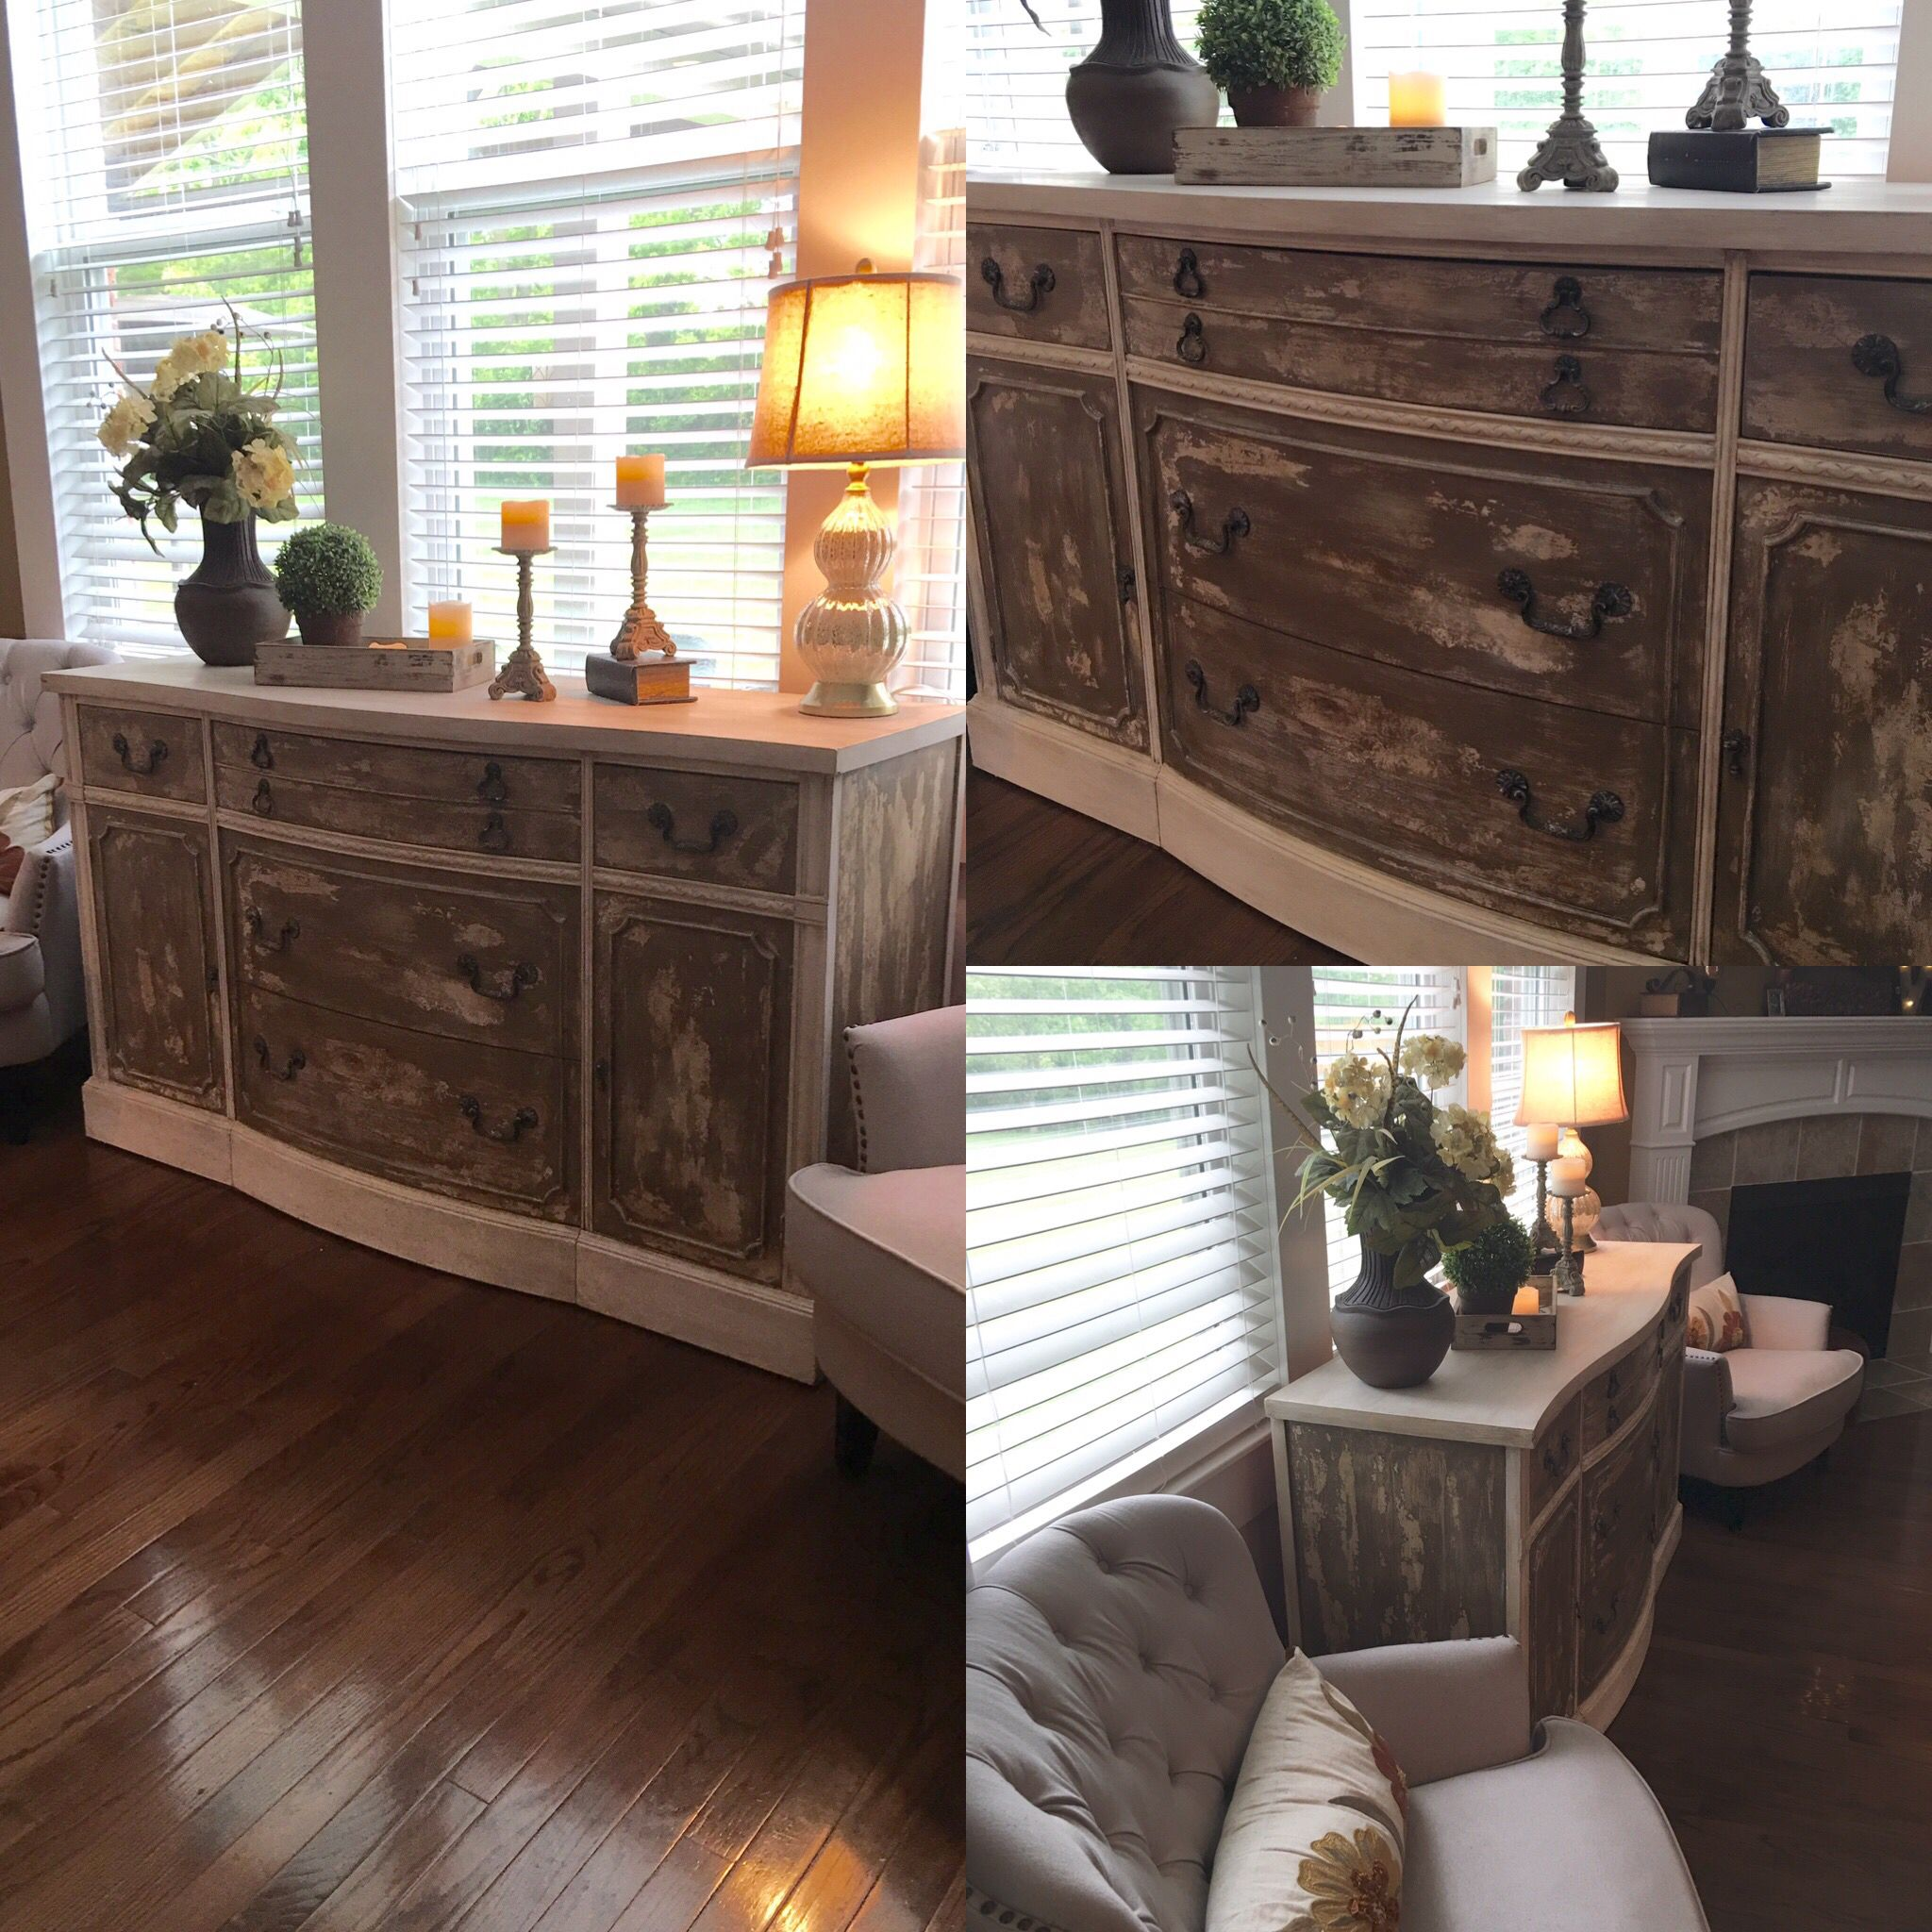 Body painted in Heirloom Traditions A la Mode. Moving parts painted in Annie Sloan Coco, highlights in Country Gray. Clear and dark wax. Hardware ages with white aging dust.  https://www.facebook.com/distressbydesign/